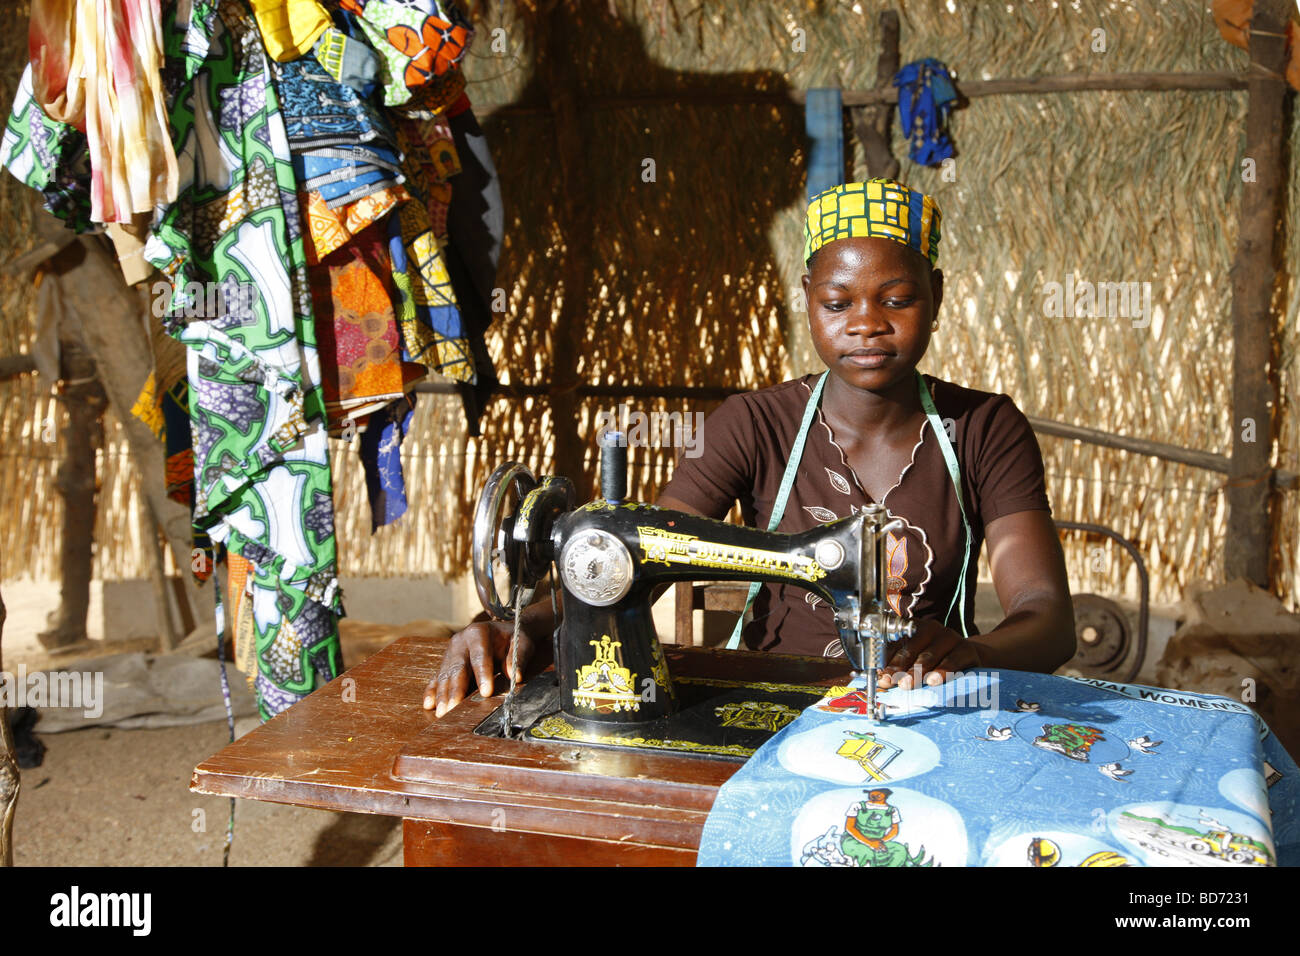 Woman using a sewing machine, working from home, Maroua, Cameroon, Africa - Stock Image